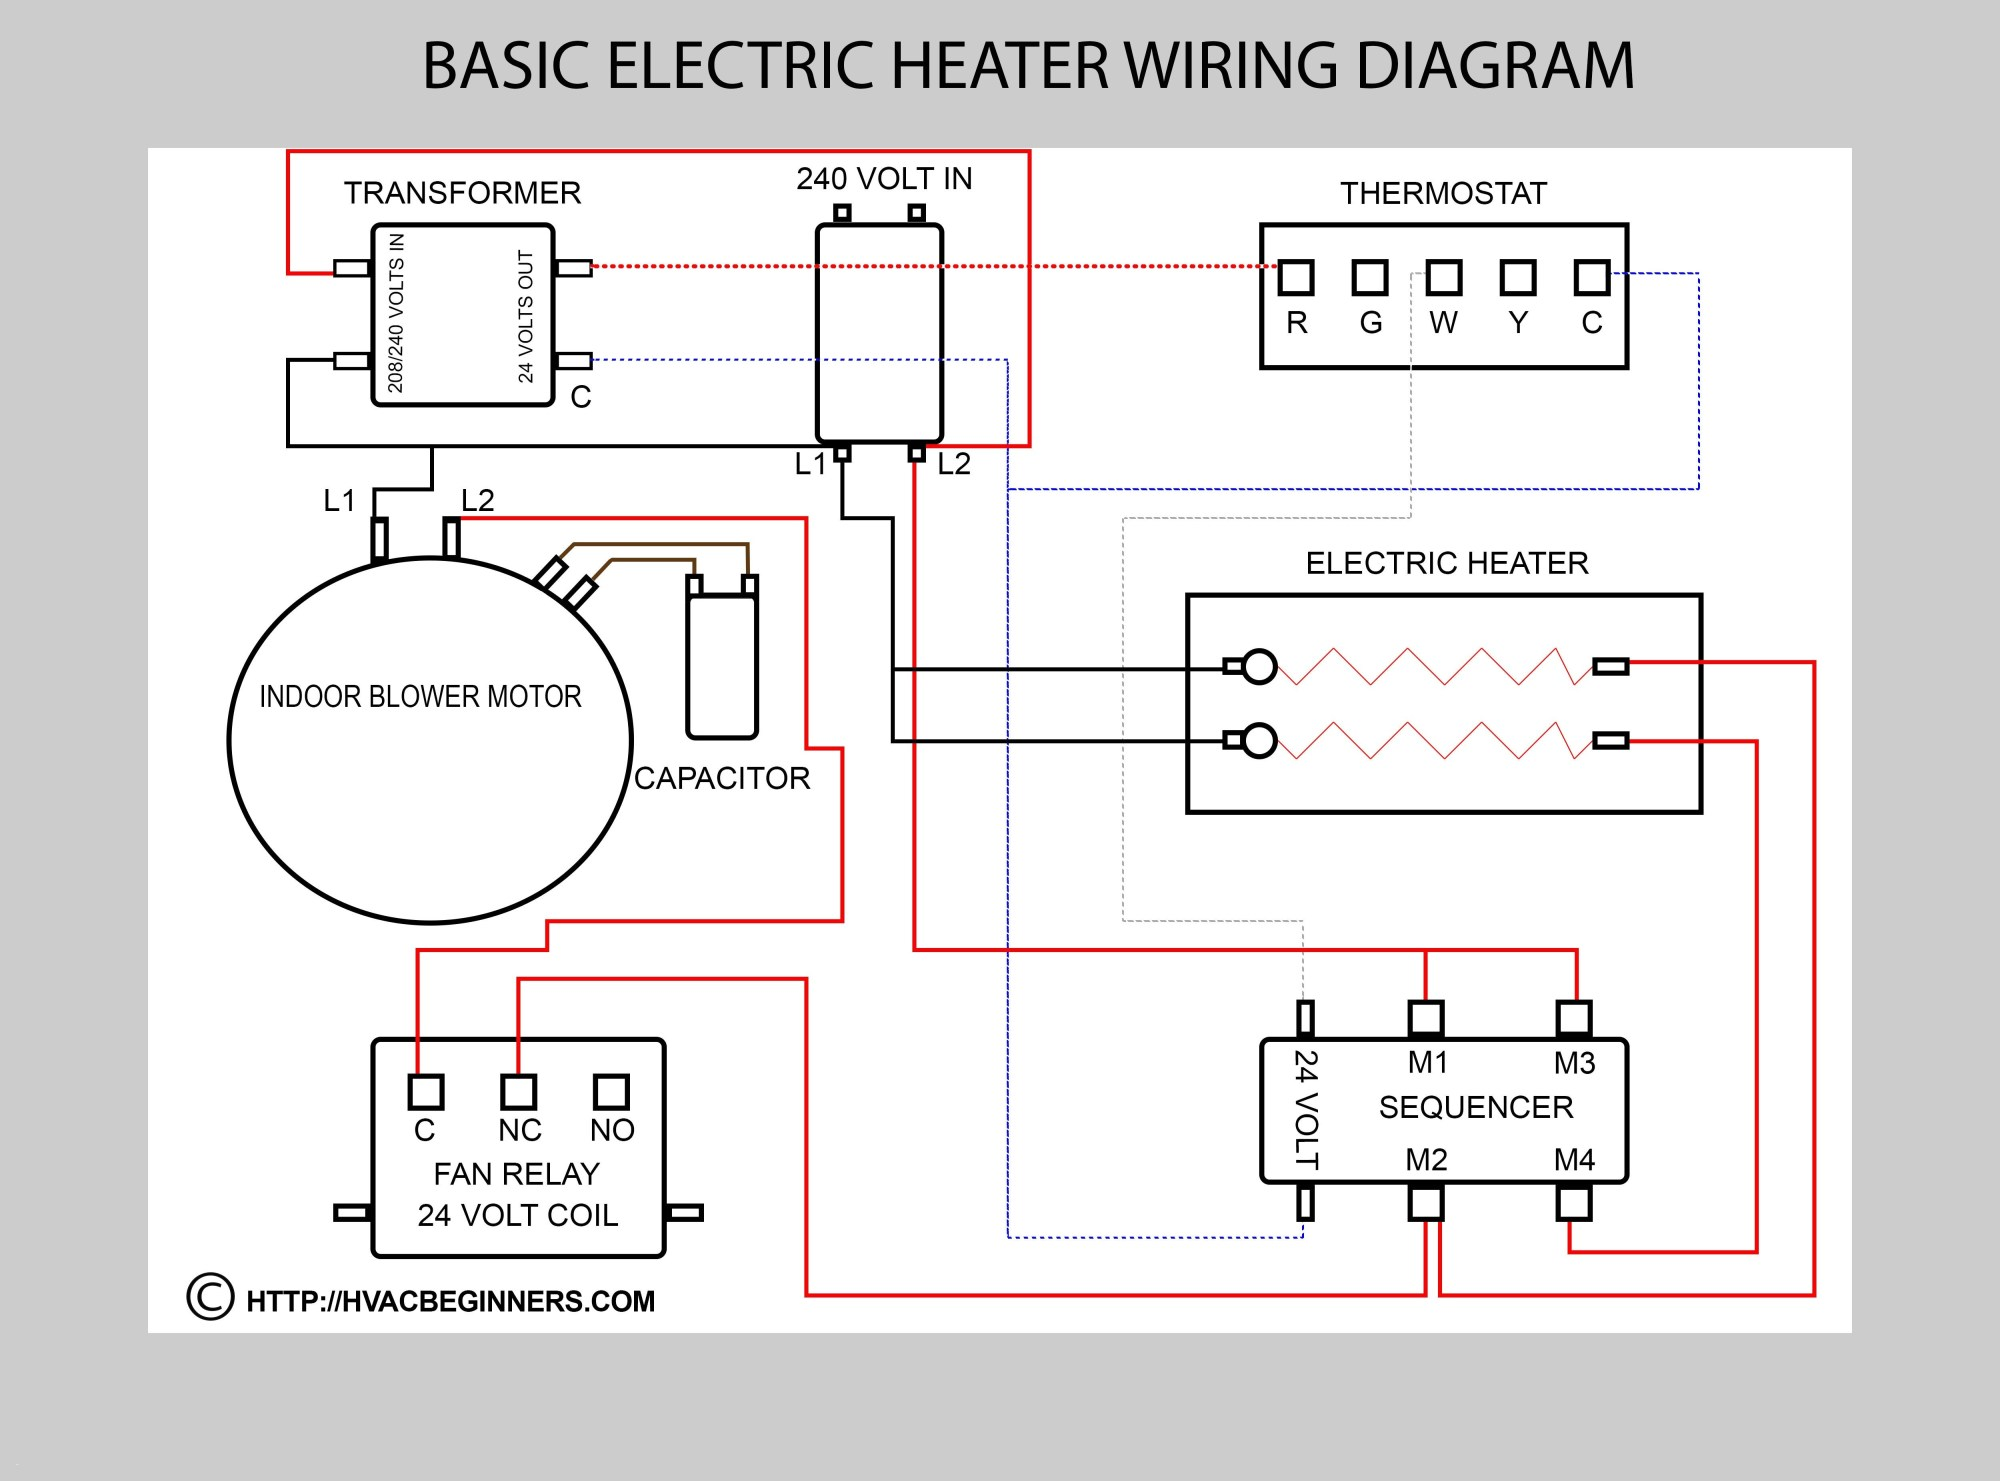 hight resolution of air conditioning wiring diagrams owner manual wiring diagram ac wire diagrams owner manual wiring